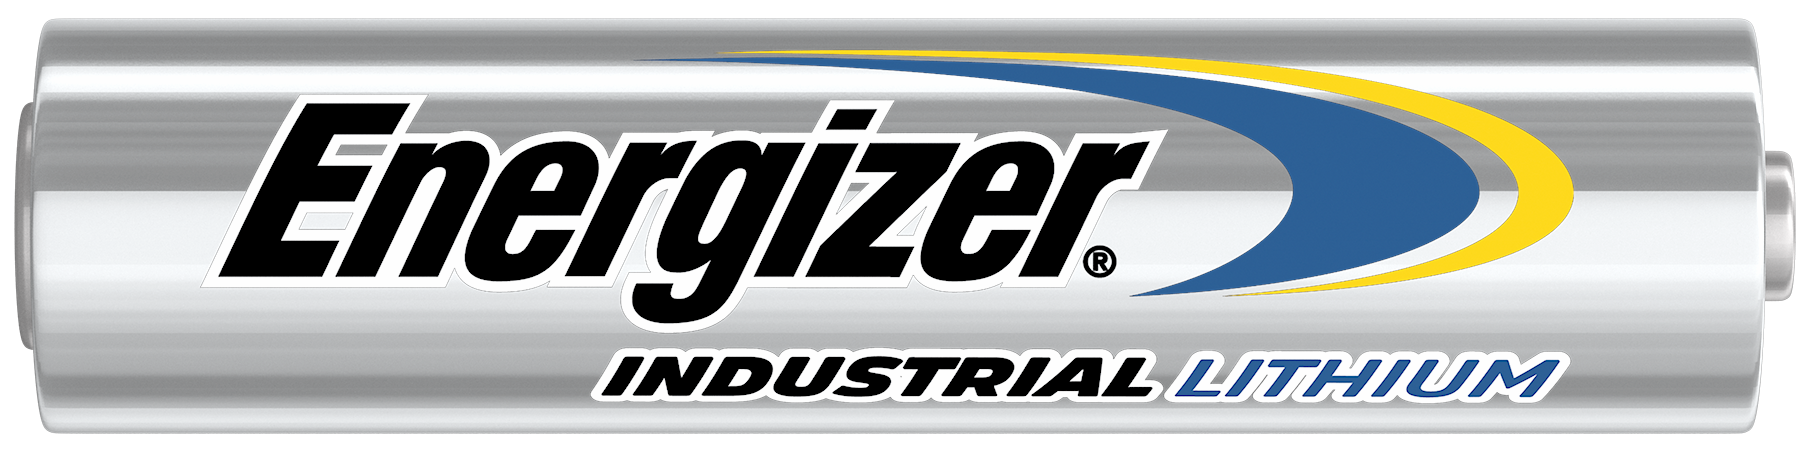 Energizer Industrial Lithium AAA Battery